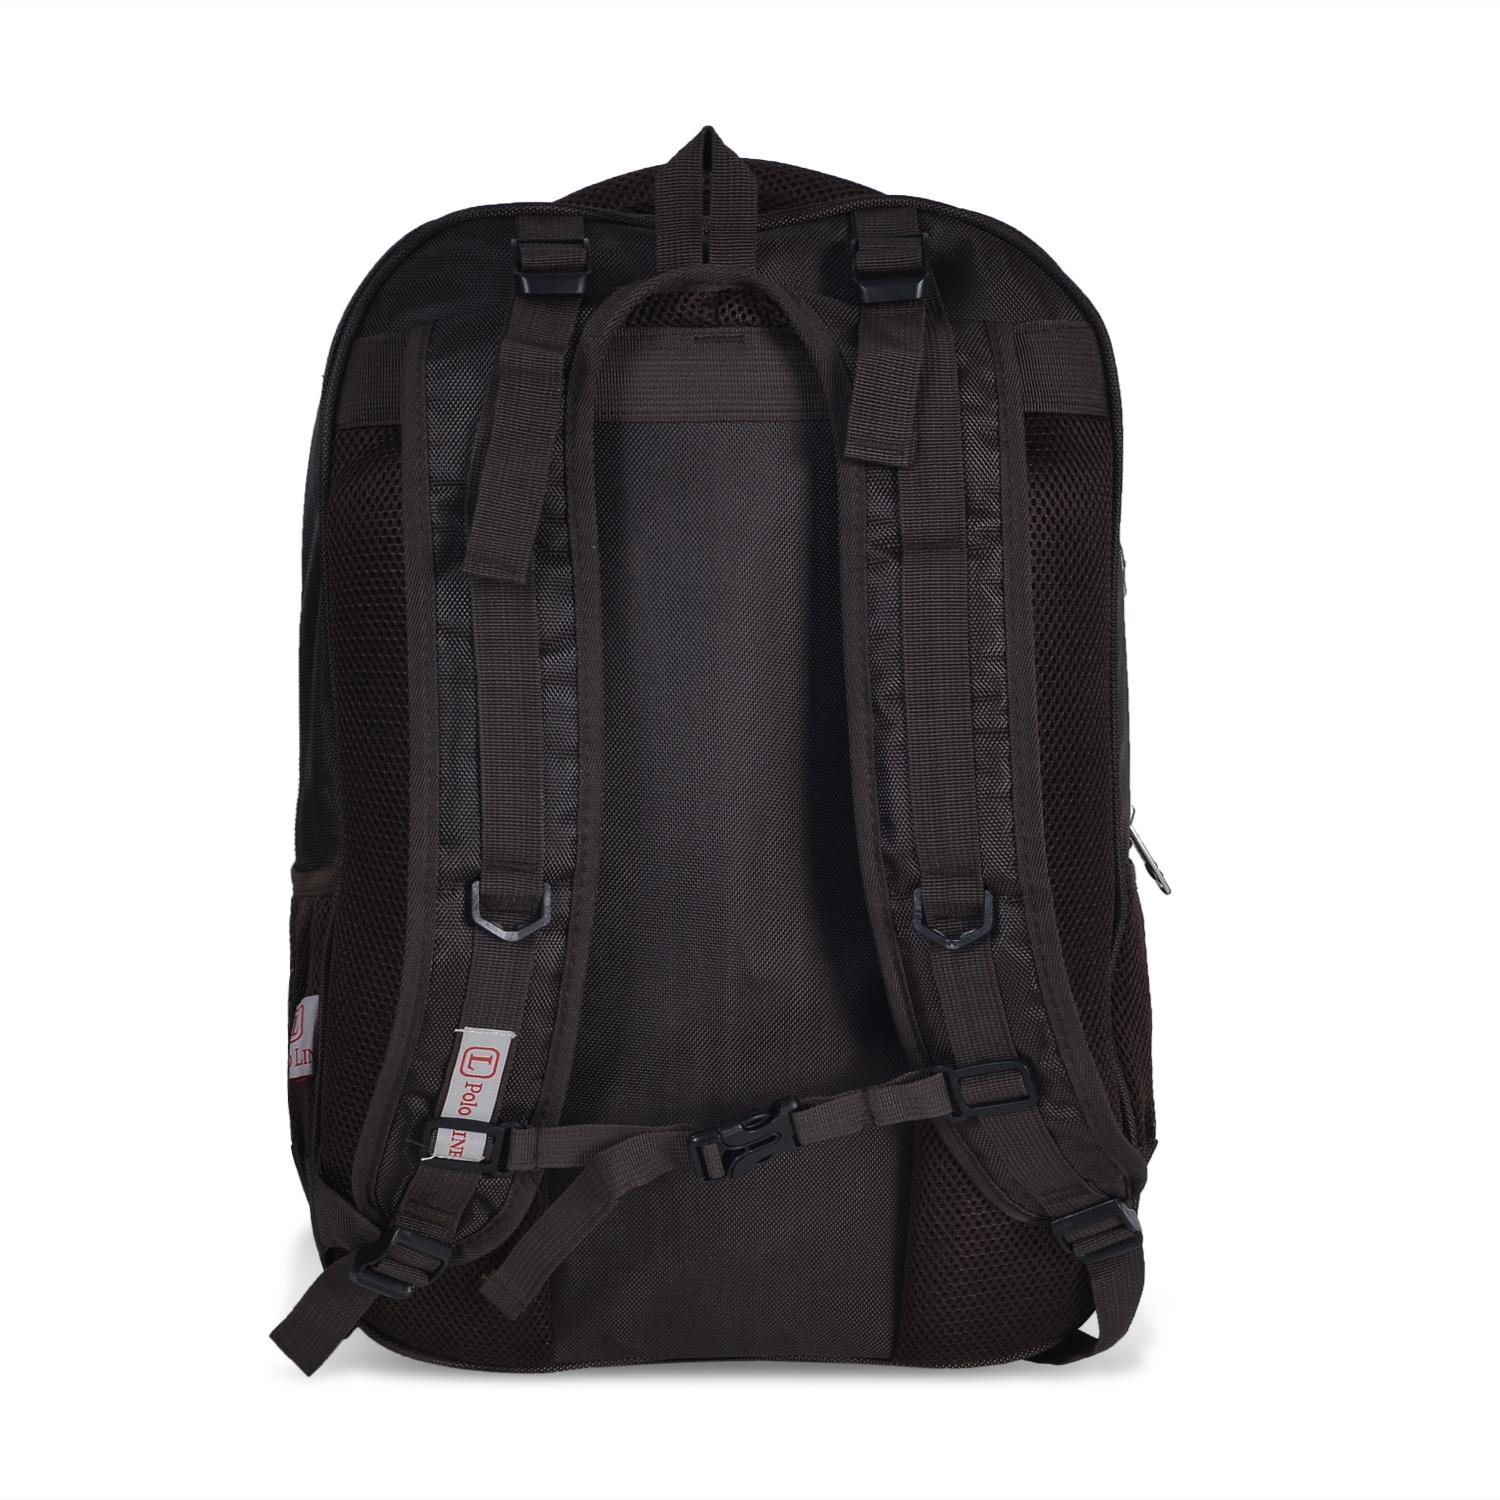 Polo Line Tas Ransel Pria Backpack Import Laptop Compartemen Cofee+ Raincover High Spec .